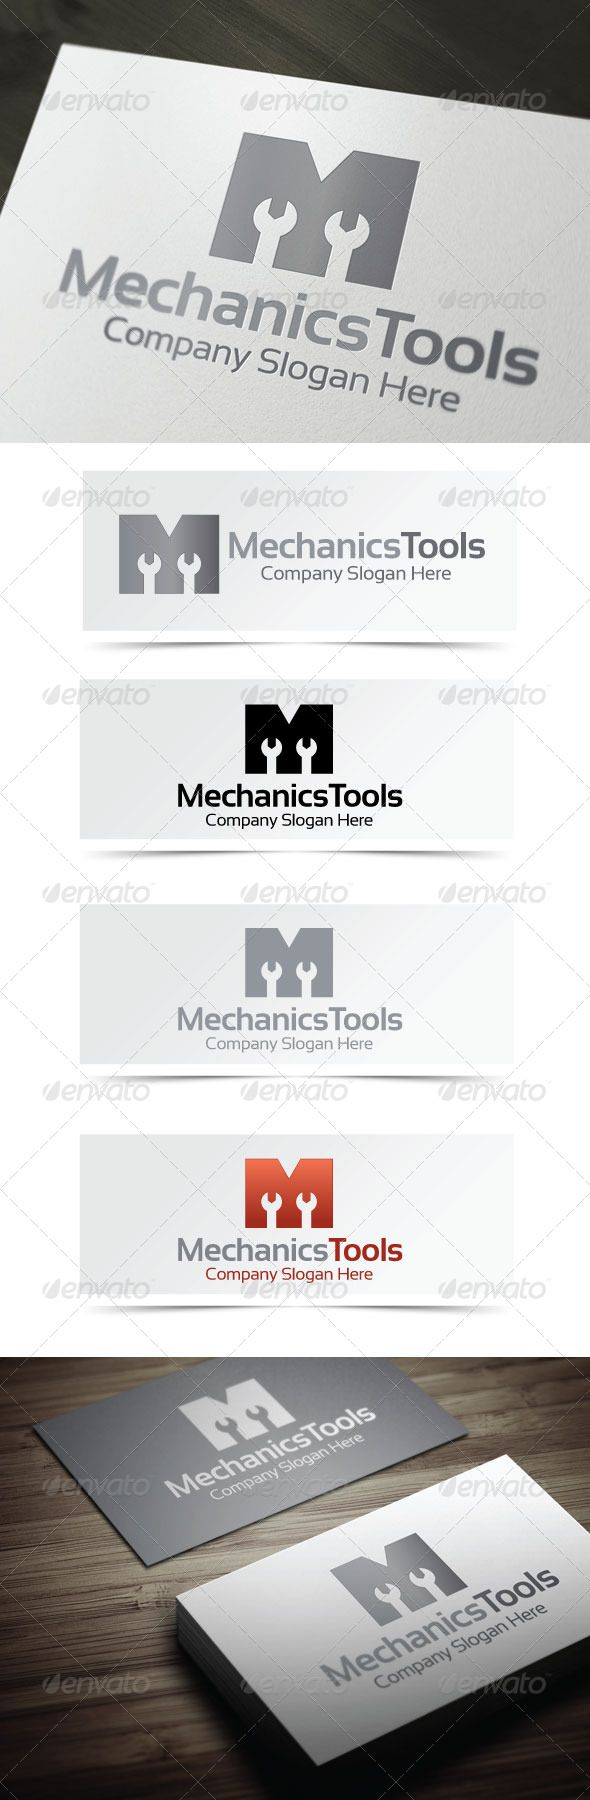 Mechanics Tools 52 best reference images on